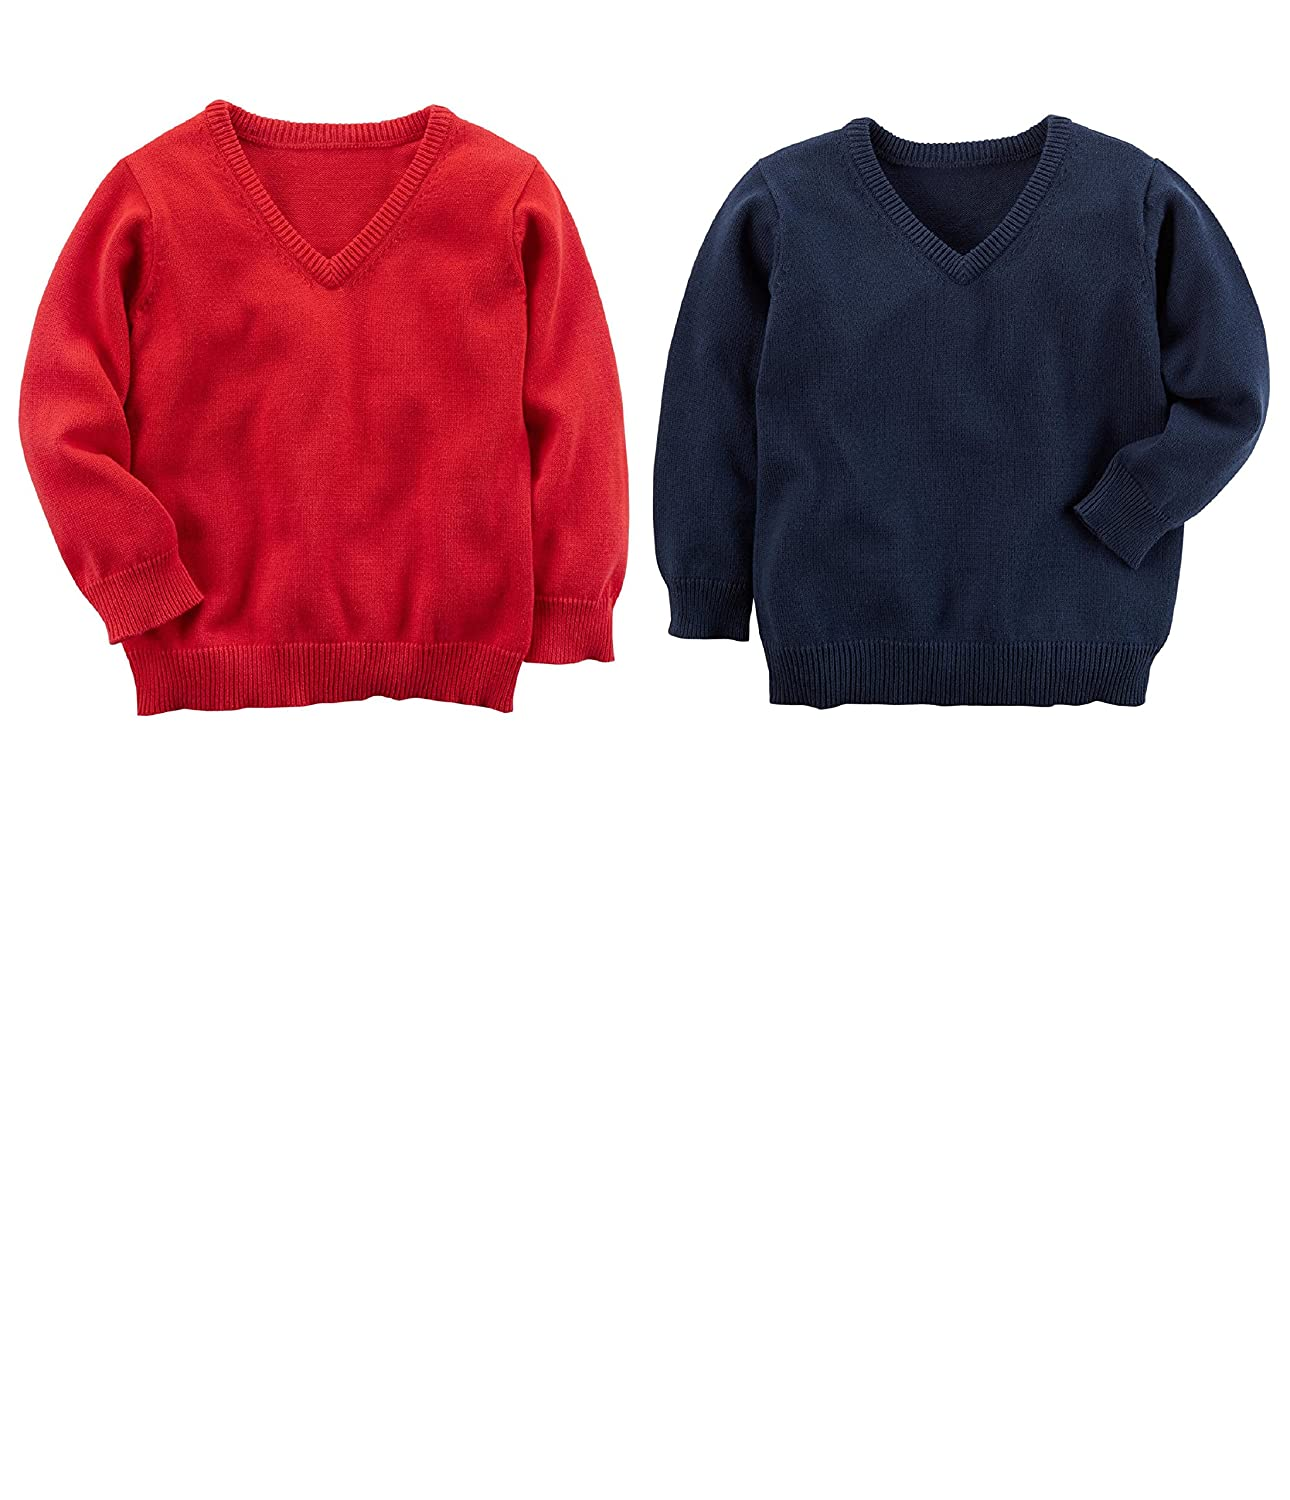 be9394d81 Amazon.com: Carter's Toddler Boys 2 Pack Warm Pullover Sweaters: Clothing